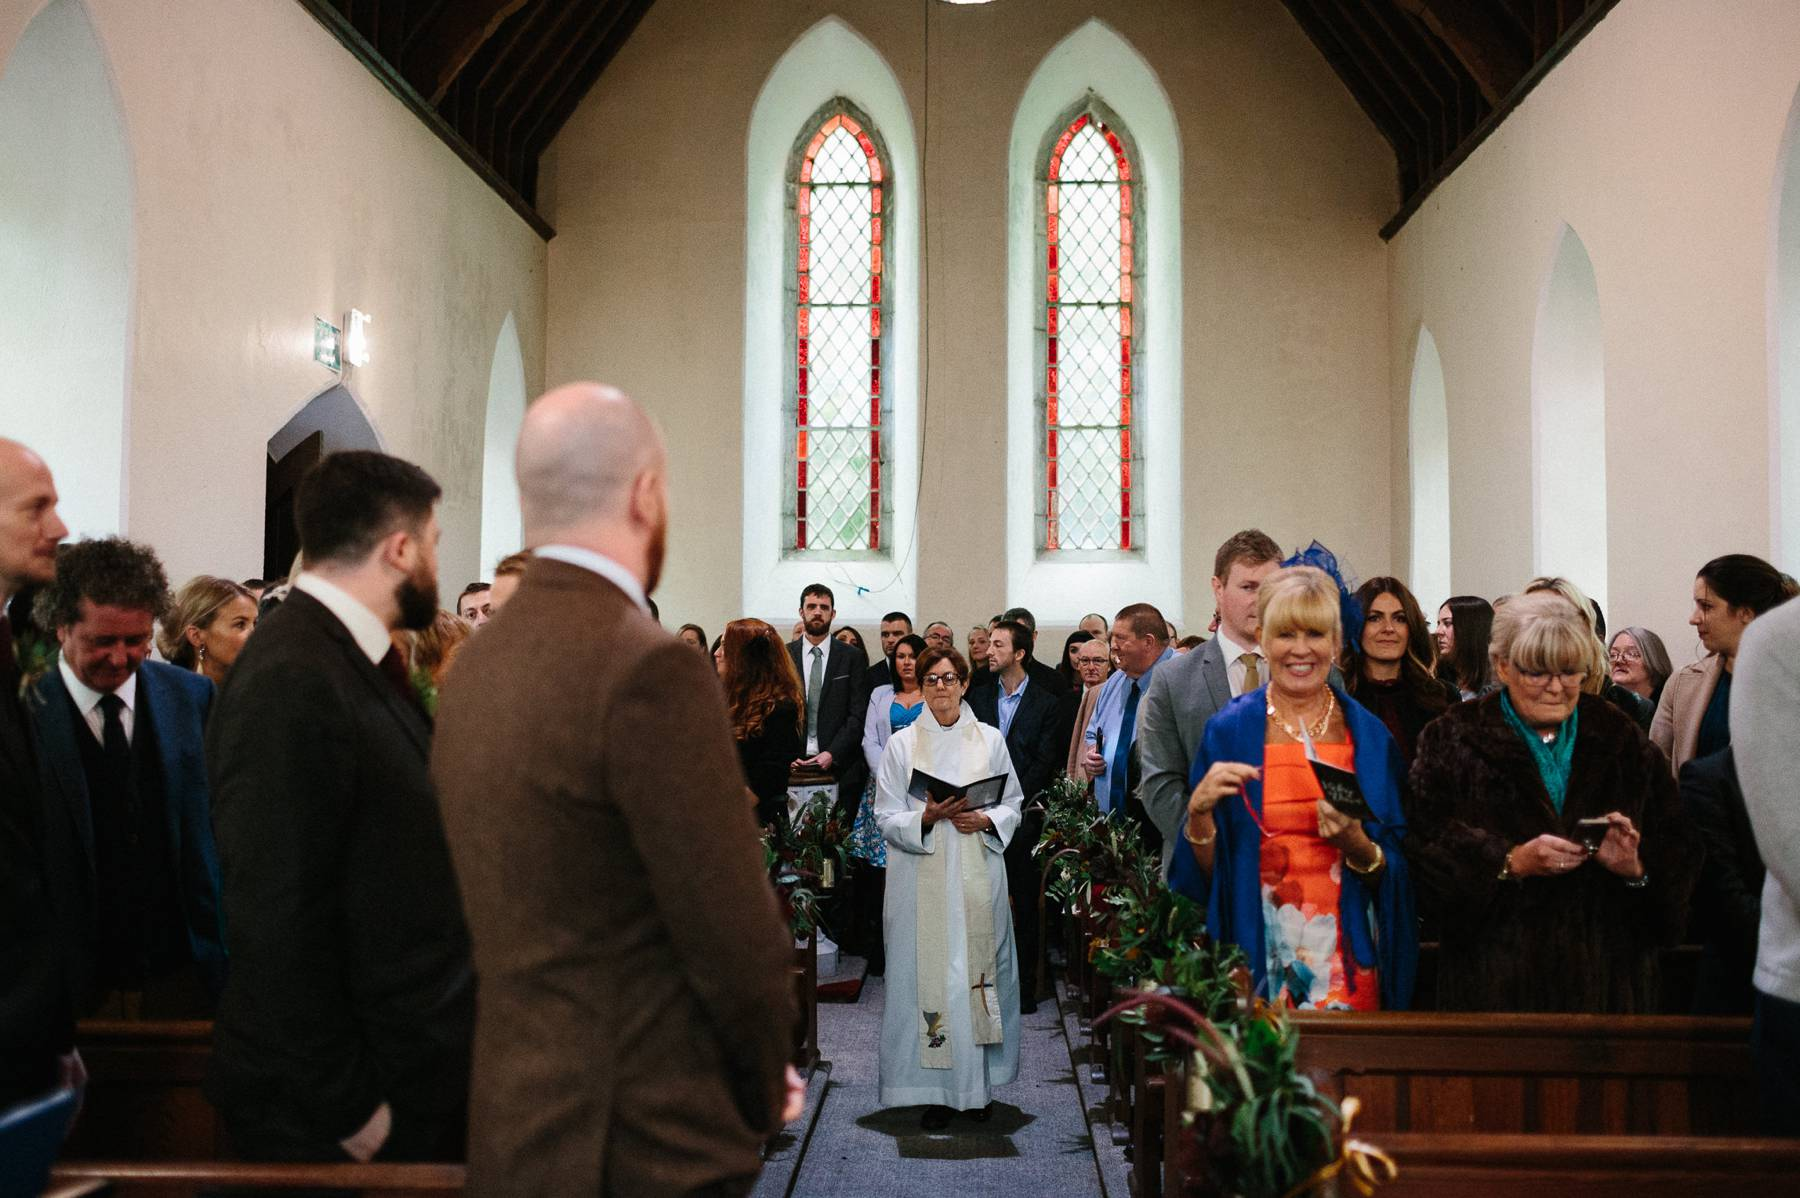 Church moment in Kinsale